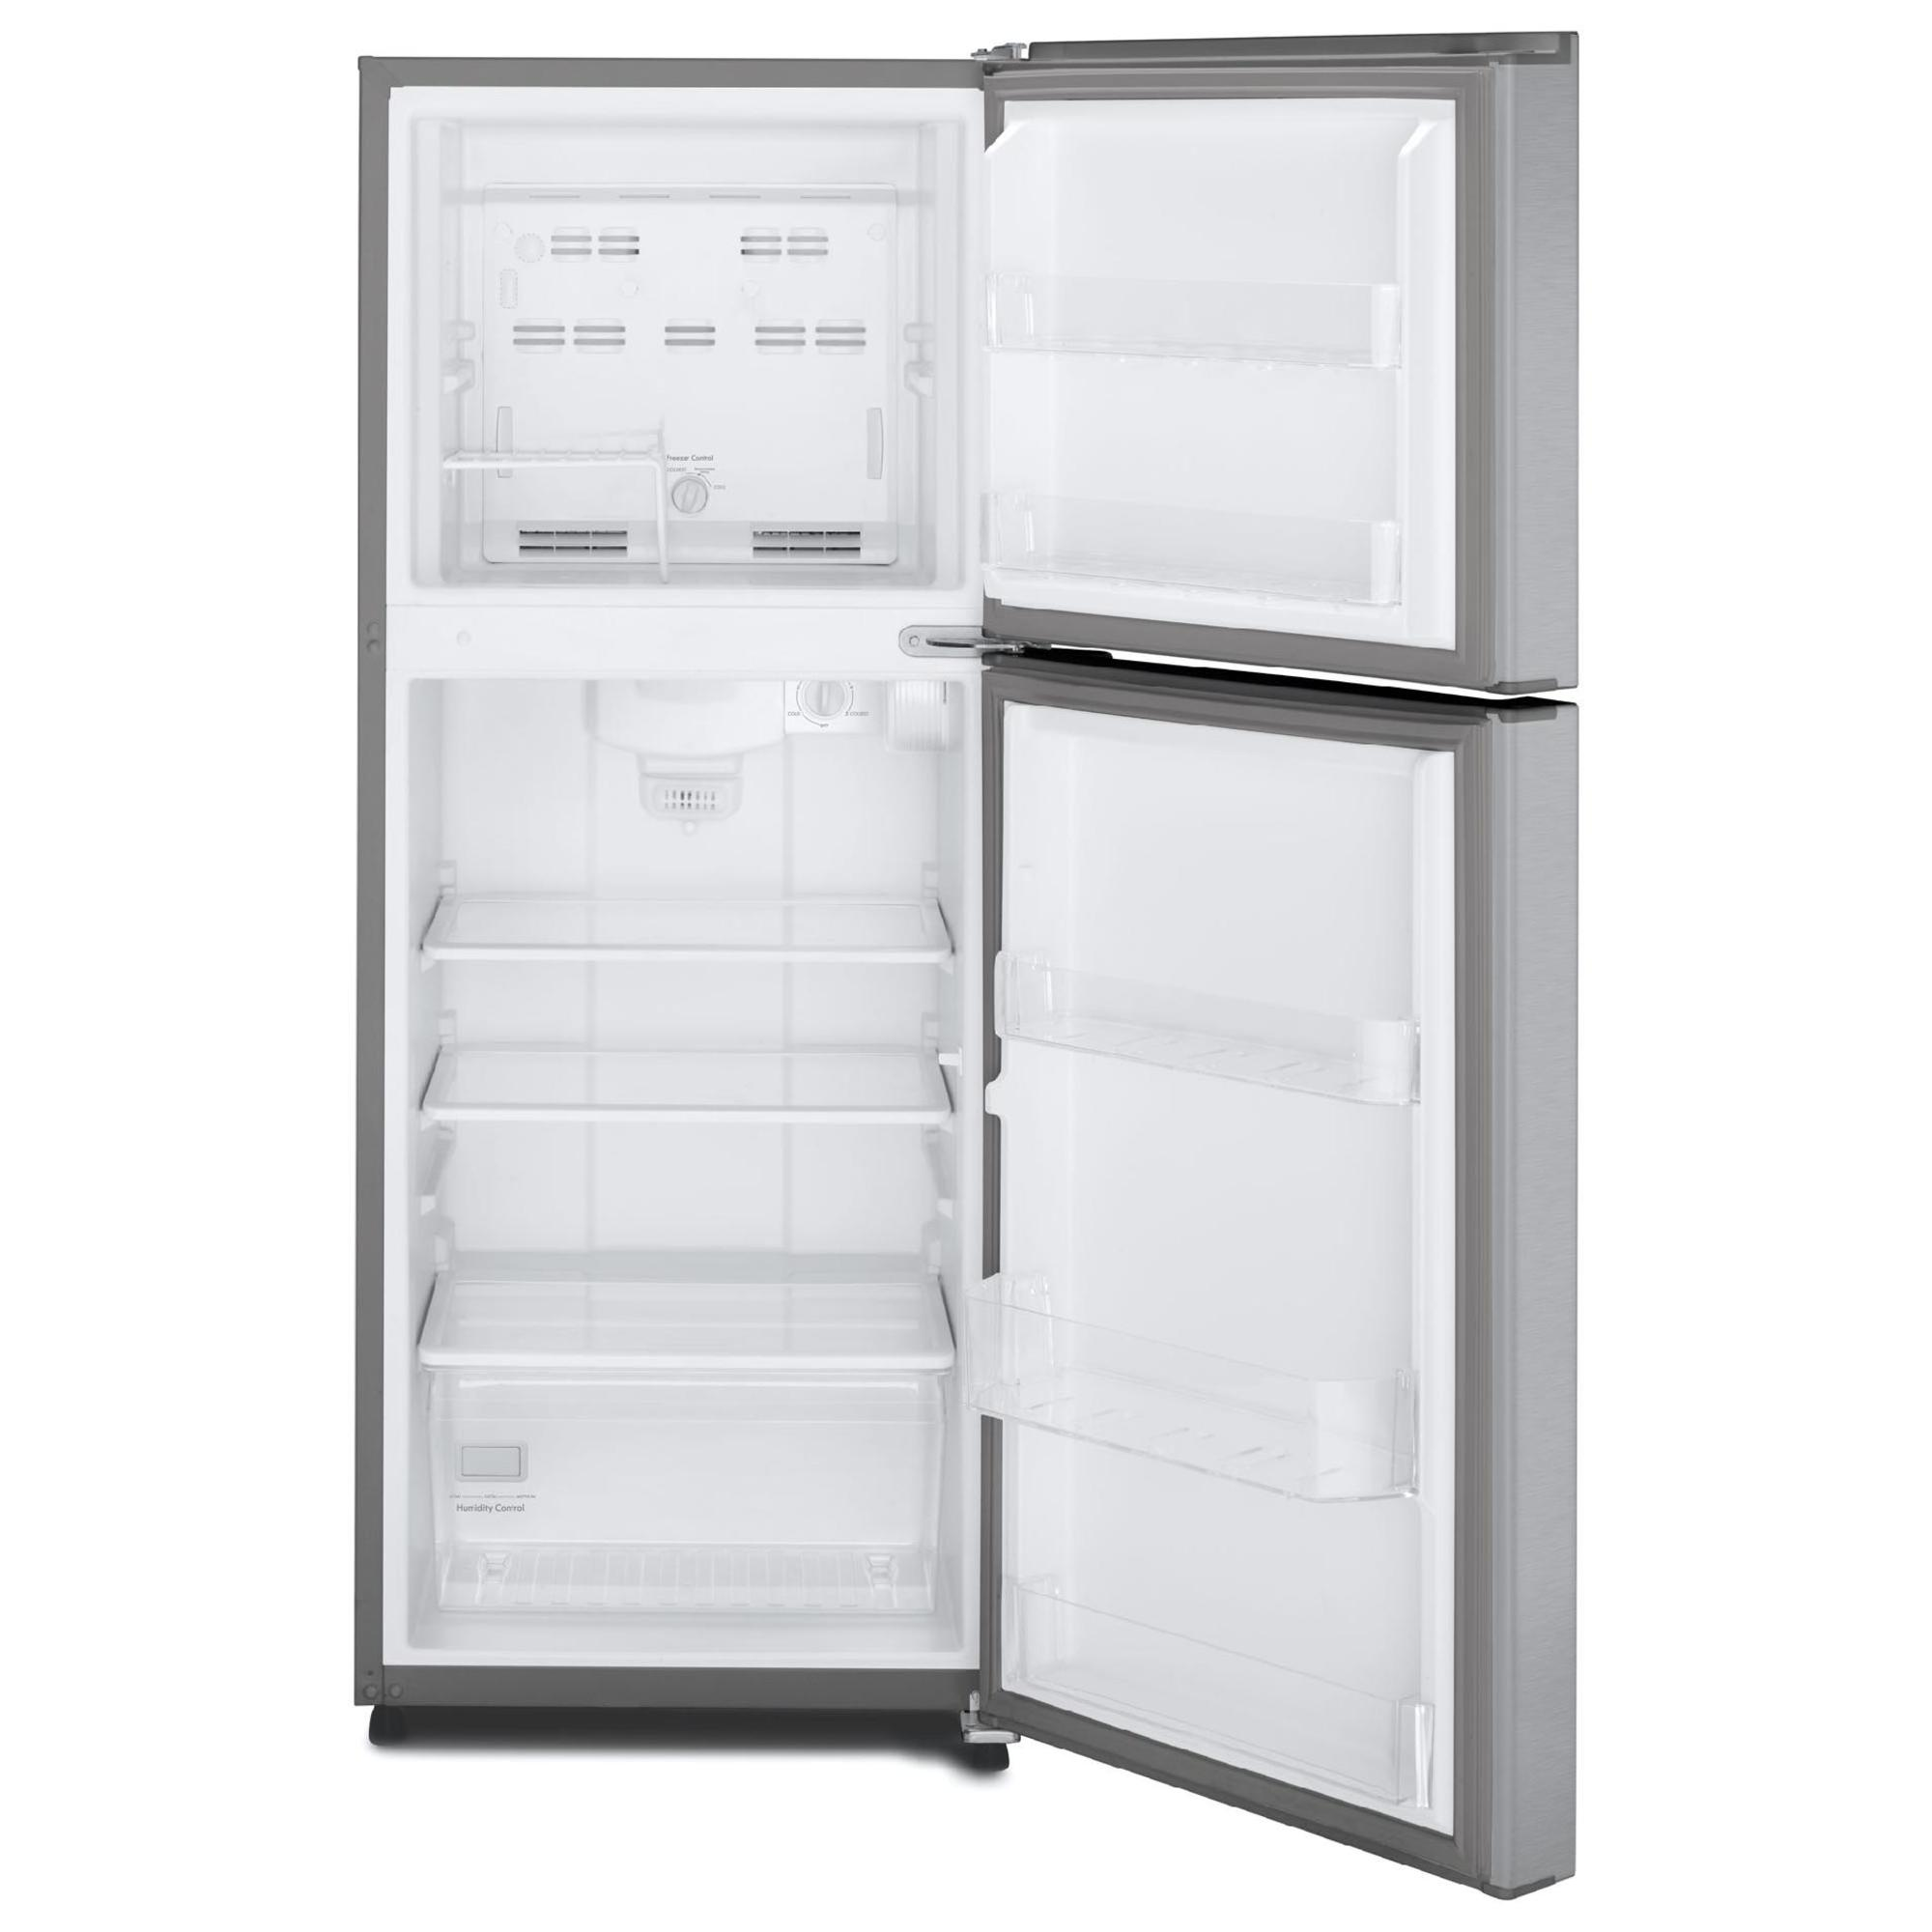 Kenmore 76393 10.7 cu. ft. Top-Freezer Refrigerator w/ Humidity-Controlled Crisper - Stainless